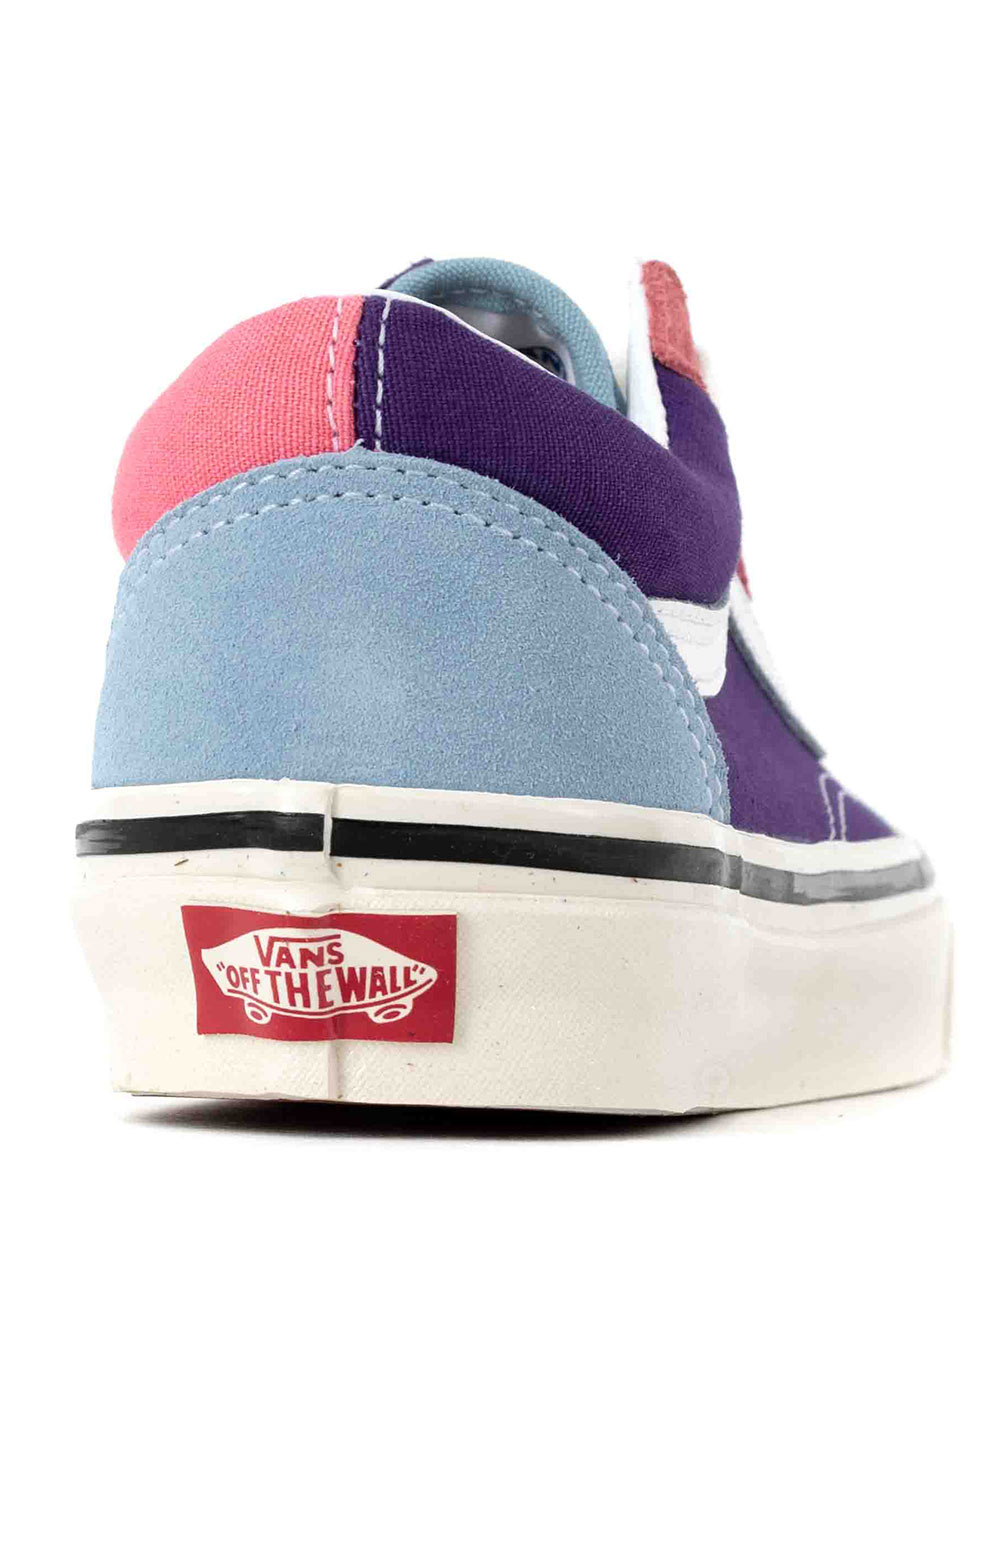 (8G2XFL) Anaheim Factory Old Skool 36 DX Shoes - OG Light Blue/OG Purple/OG Pink 5